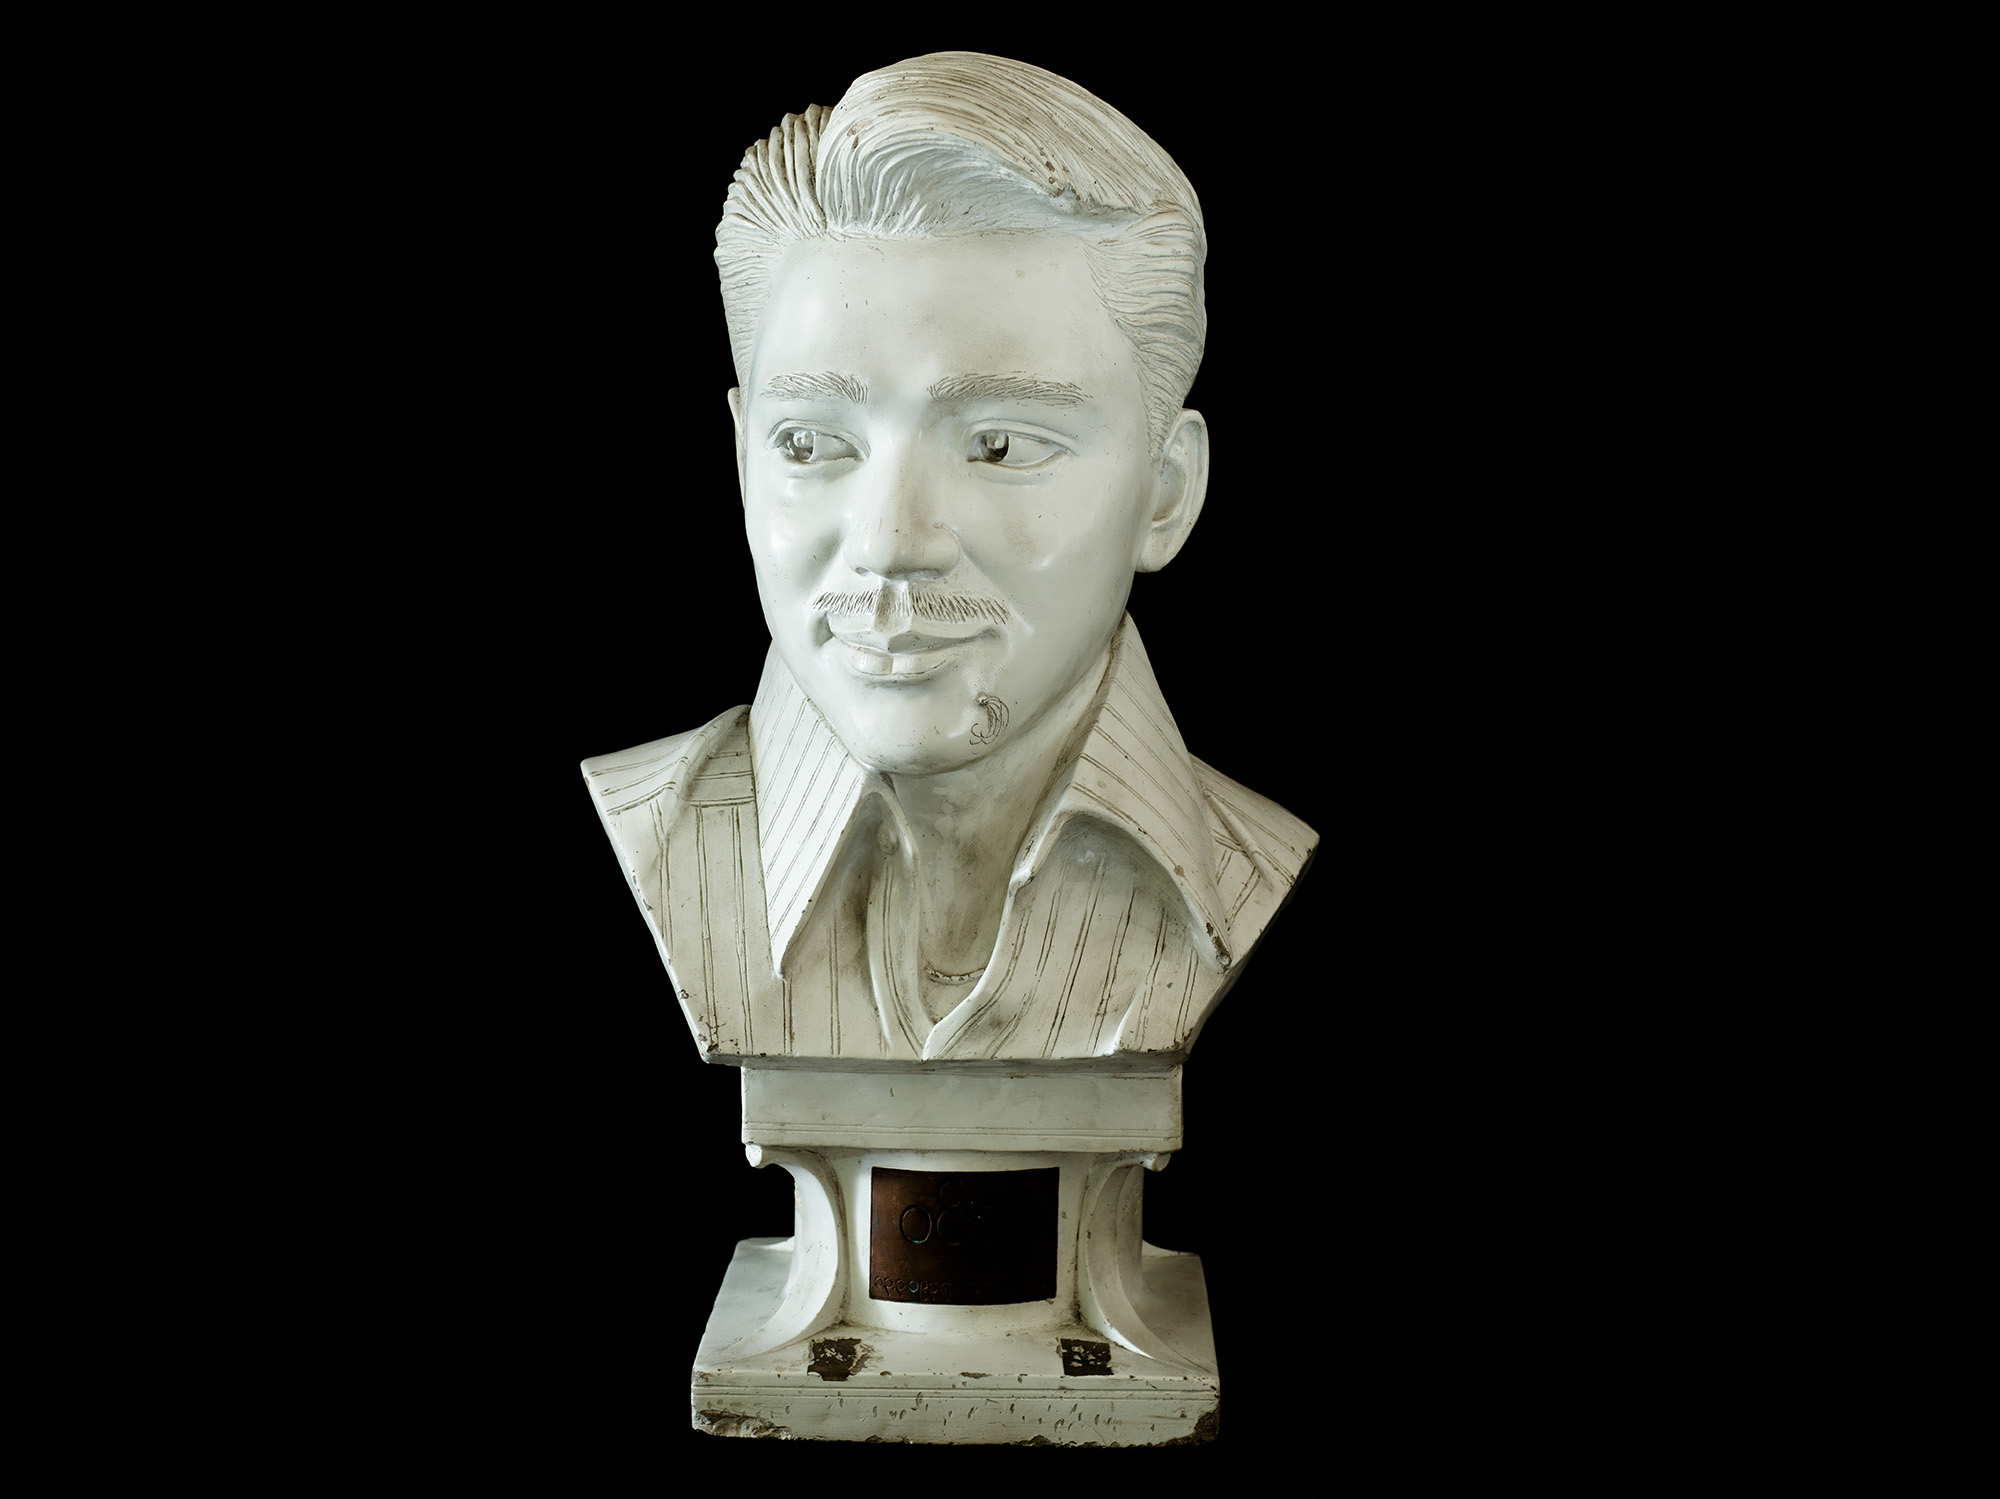 A bust of Burma's most famous actor, Win Oo. Born in Yangon in 1935, he won numerous academy awards for his performances, including Best Actor for  Hmon Shwe Yee  in 1970. He starred in 27 films, before passing away in 1988.